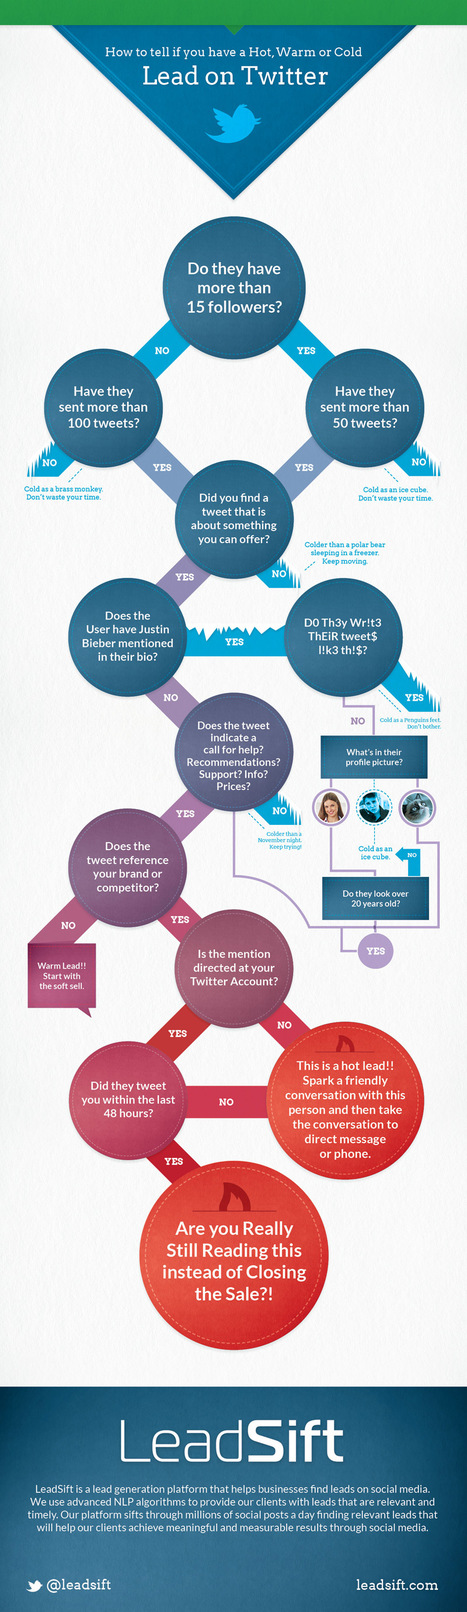 How to find leads on Twitter [infographic] | Everything else | Scoop.it